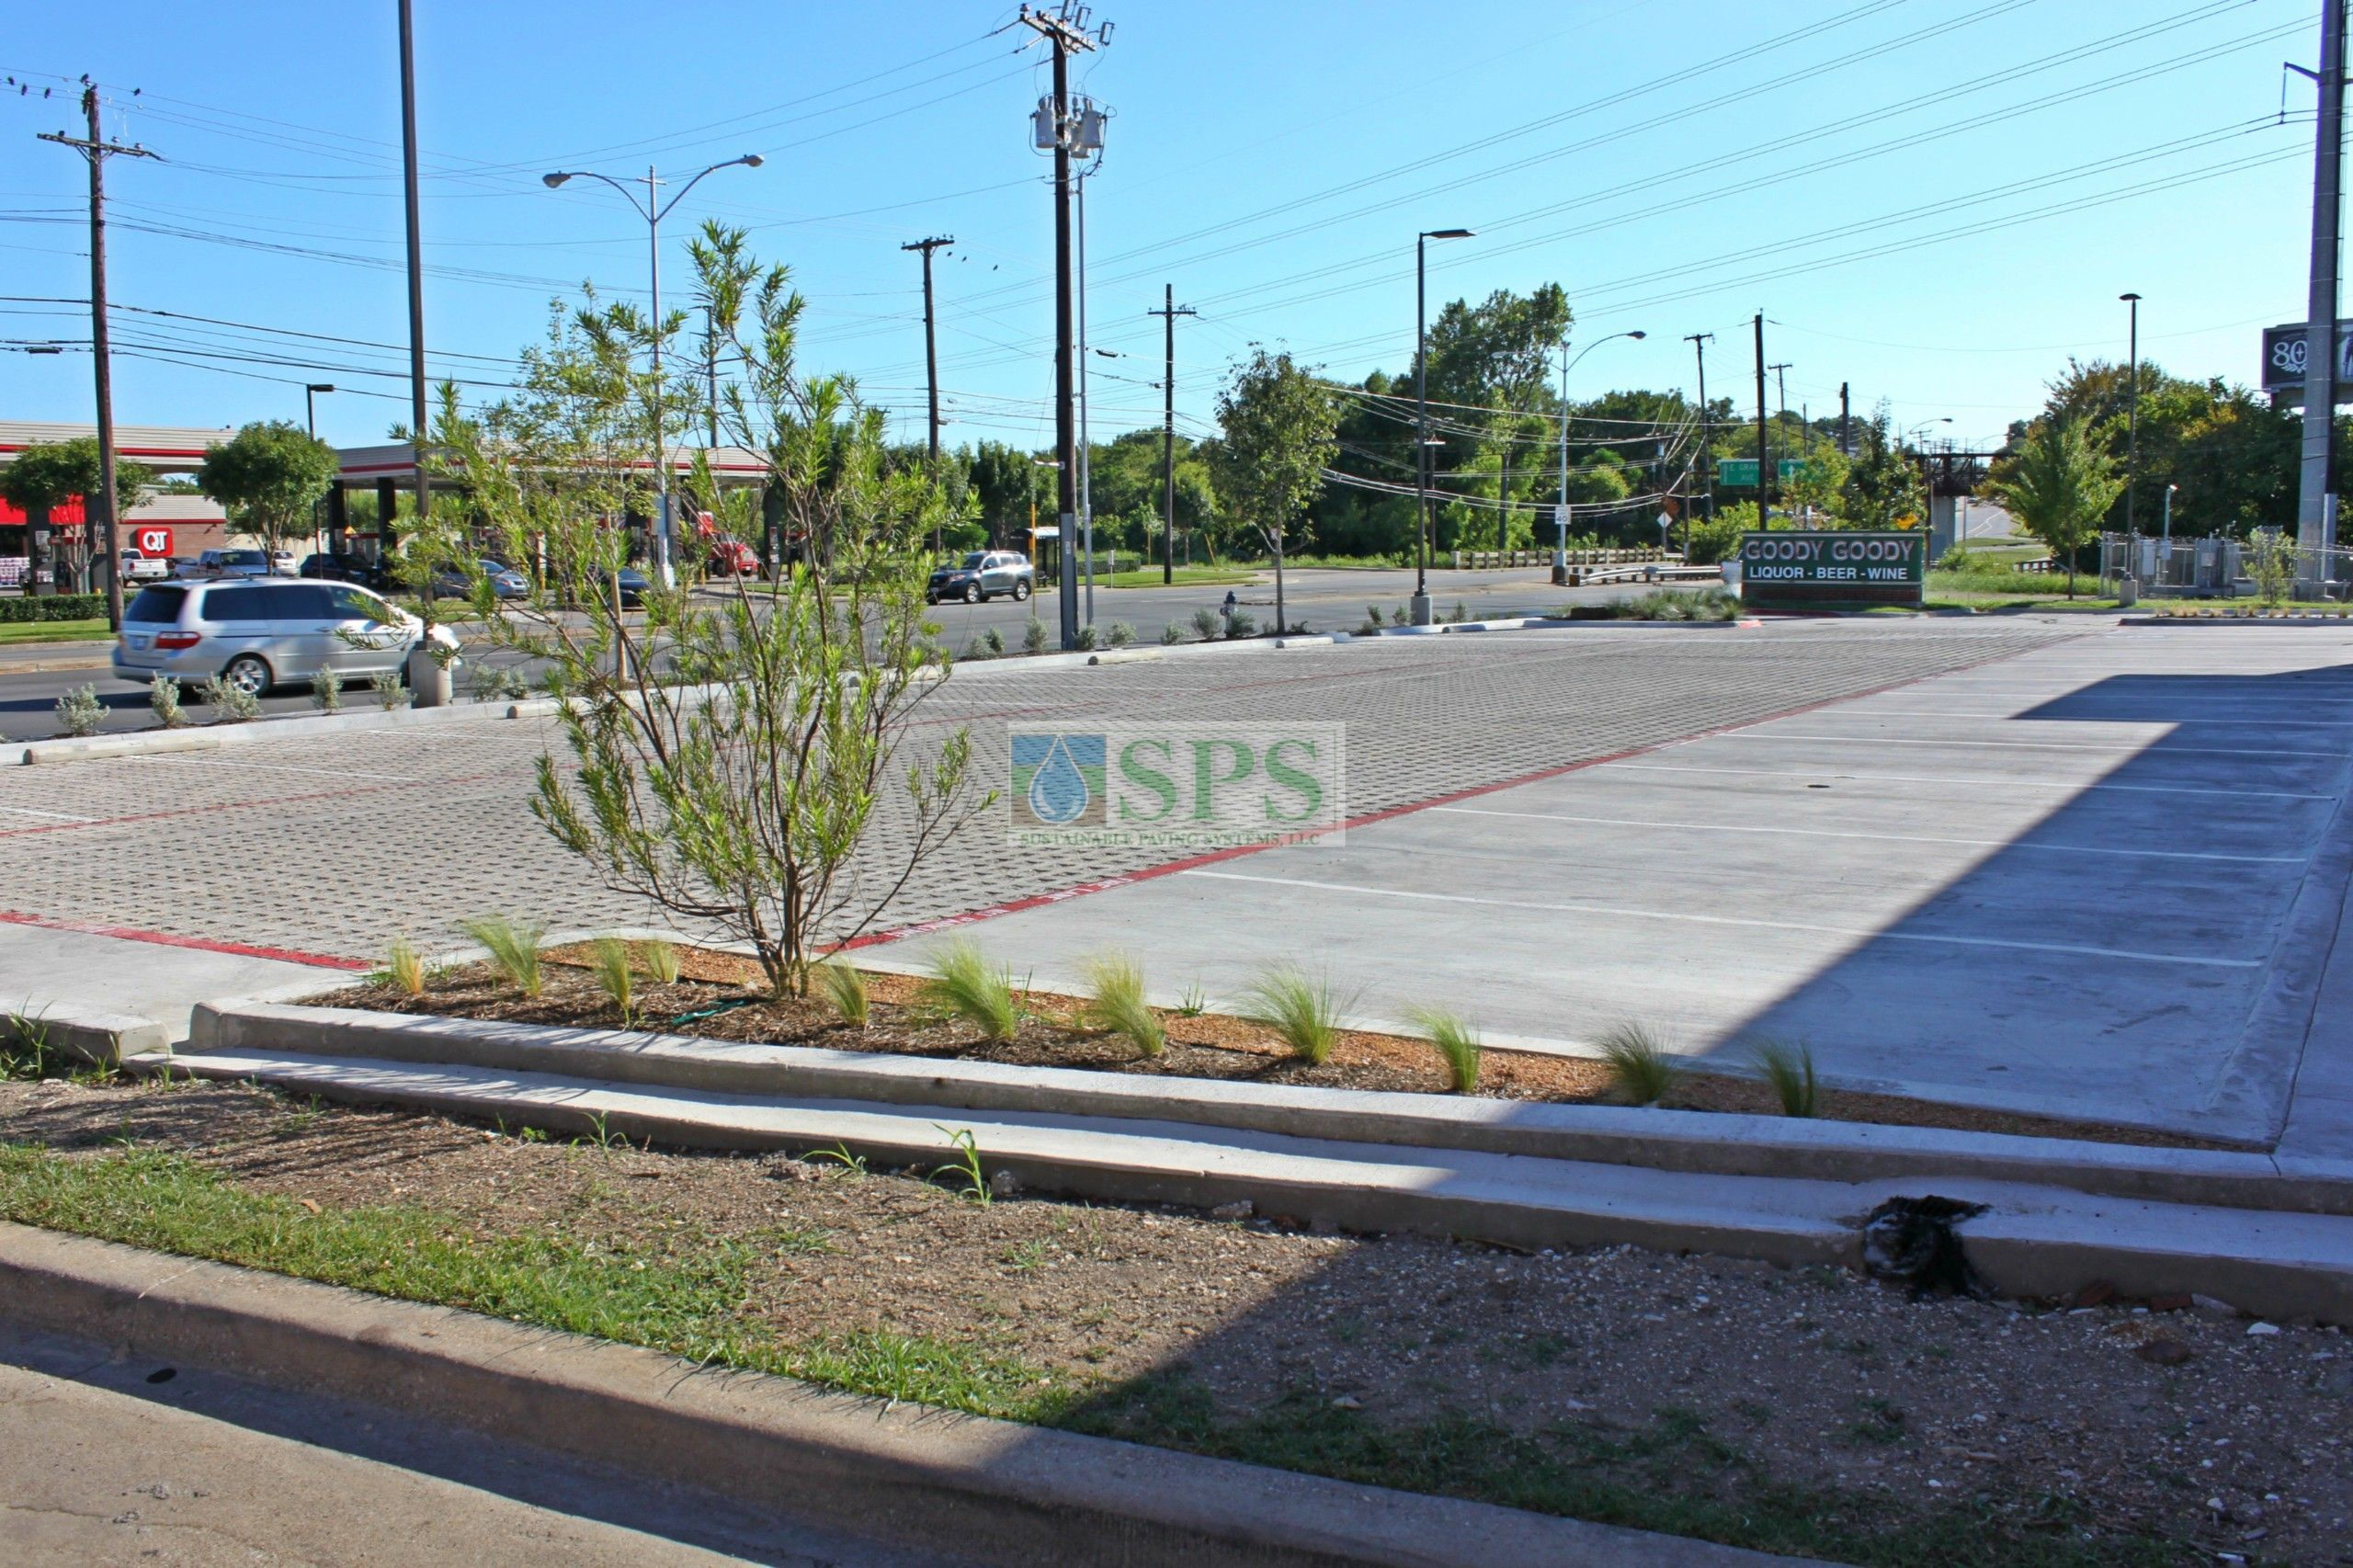 Another view of the parking lot of Goody Goody Liquor in Dallas, TX, featuring Grasscrete Stone Filled Systems installed by Texas Bomanite.